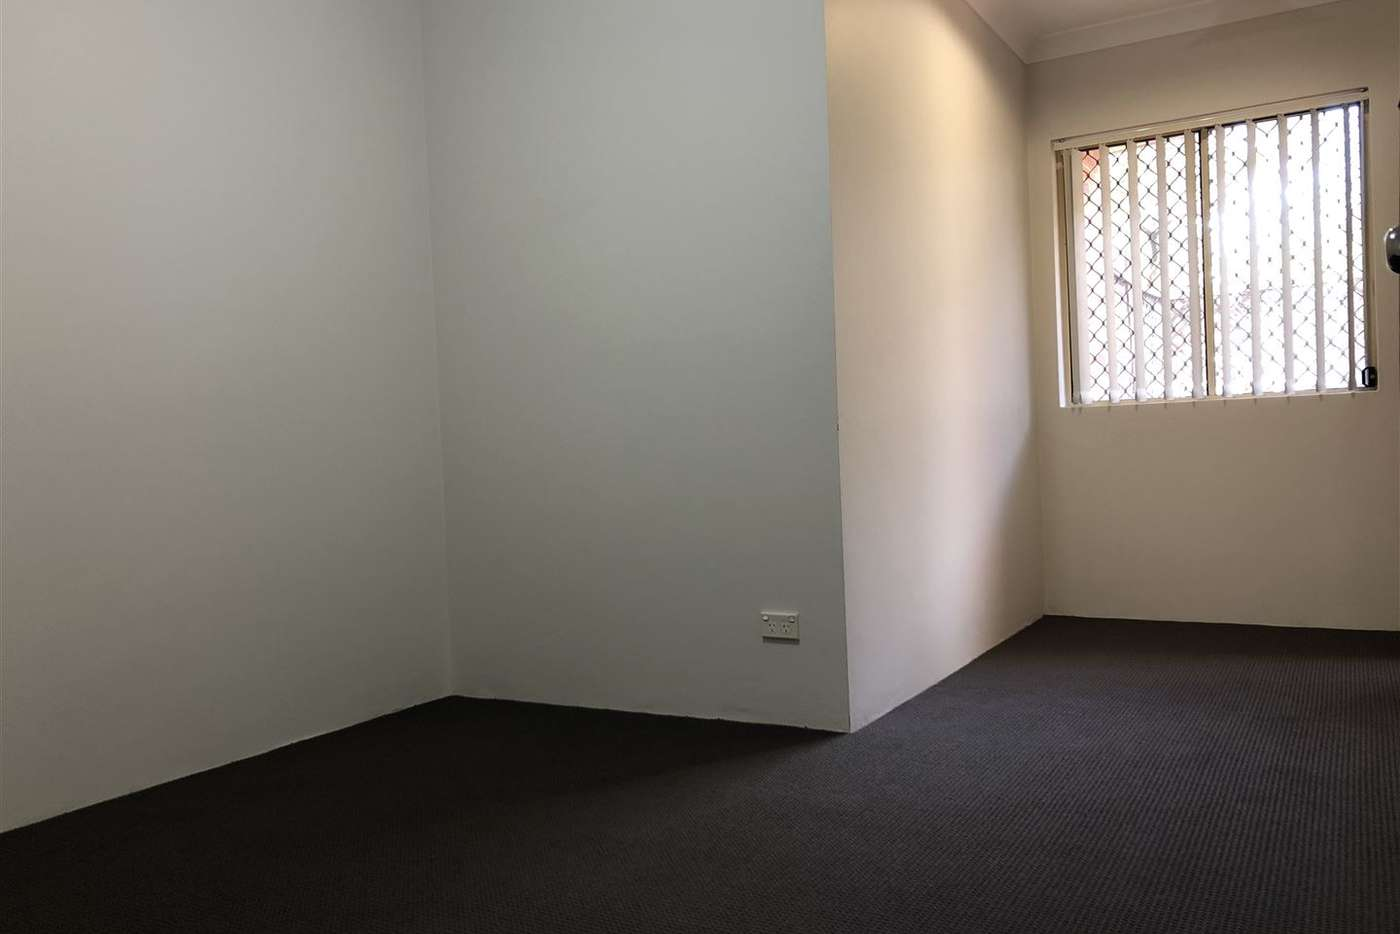 Sixth view of Homely apartment listing, 9/11 Oxford St, Blacktown NSW 2148